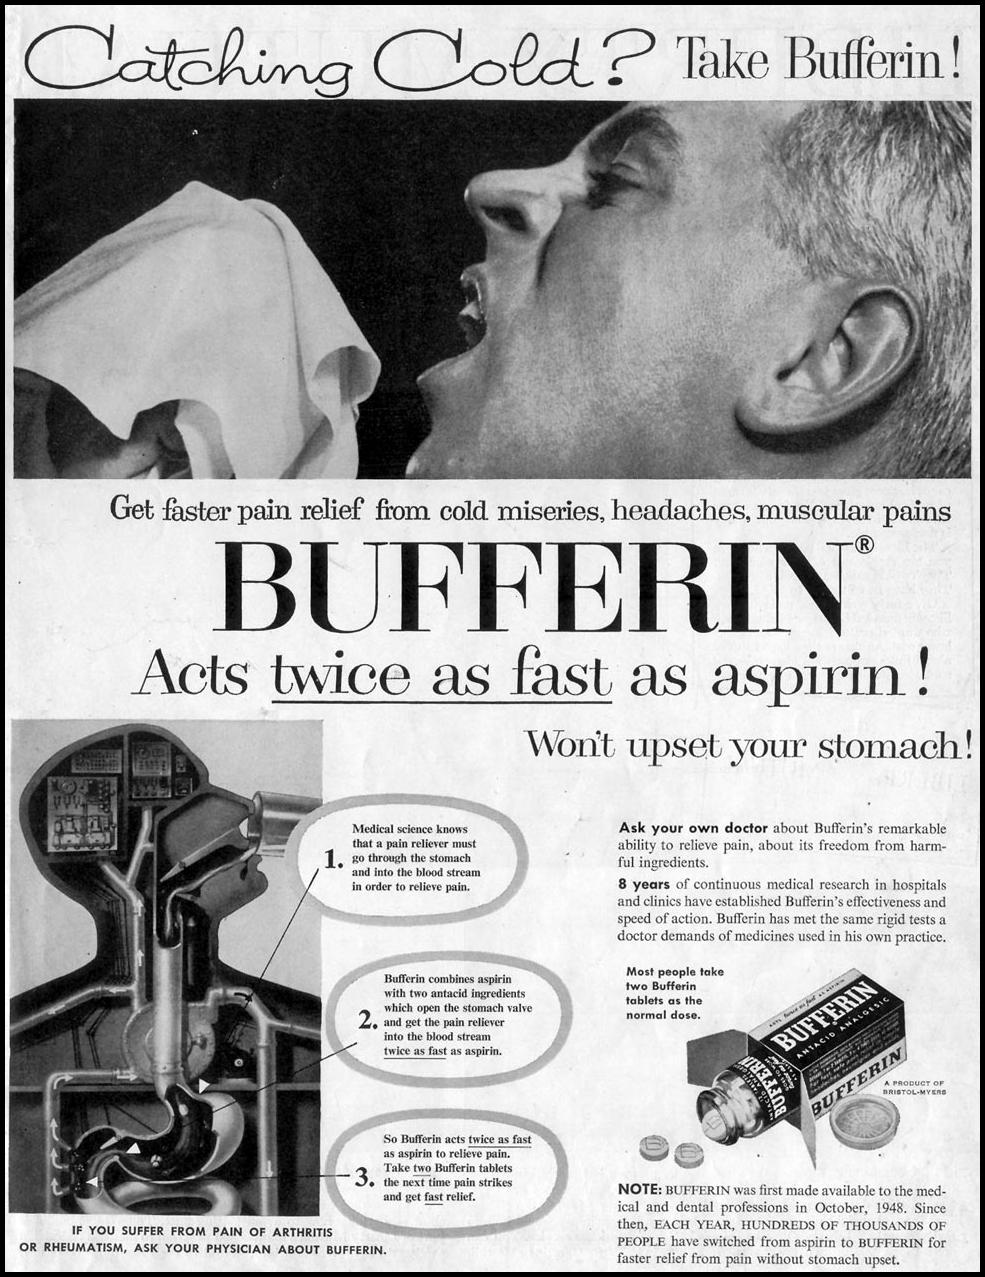 BUFFERIN SATURDAY EVENING POST 03/26/1955 p. 1